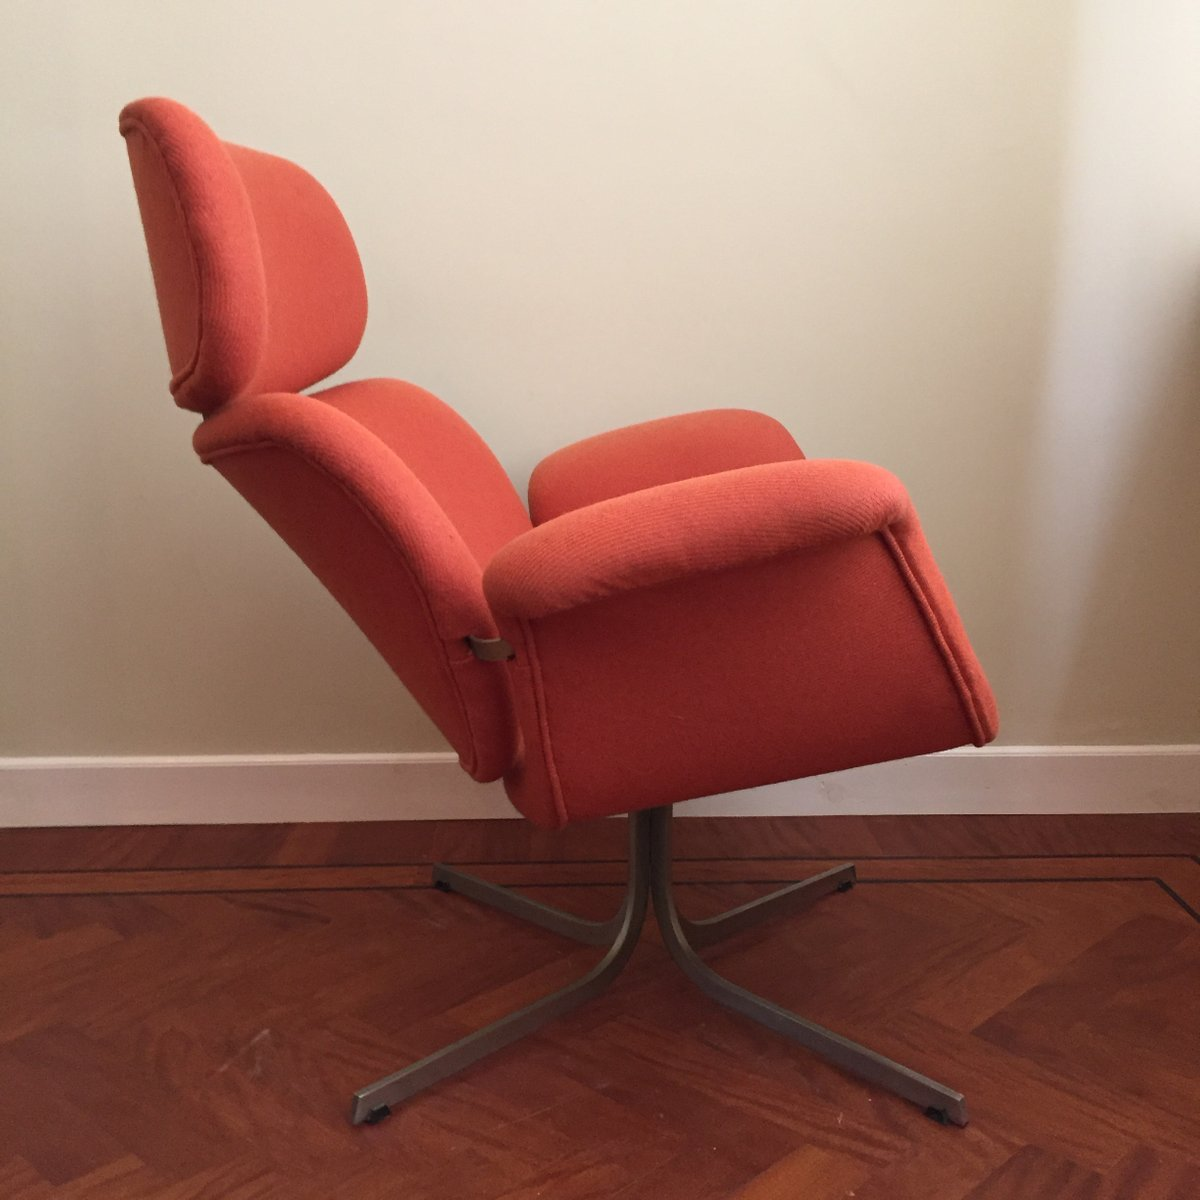 Lounge Chair by Pierre Paulin for Artifort 1960s for sale at Pamono